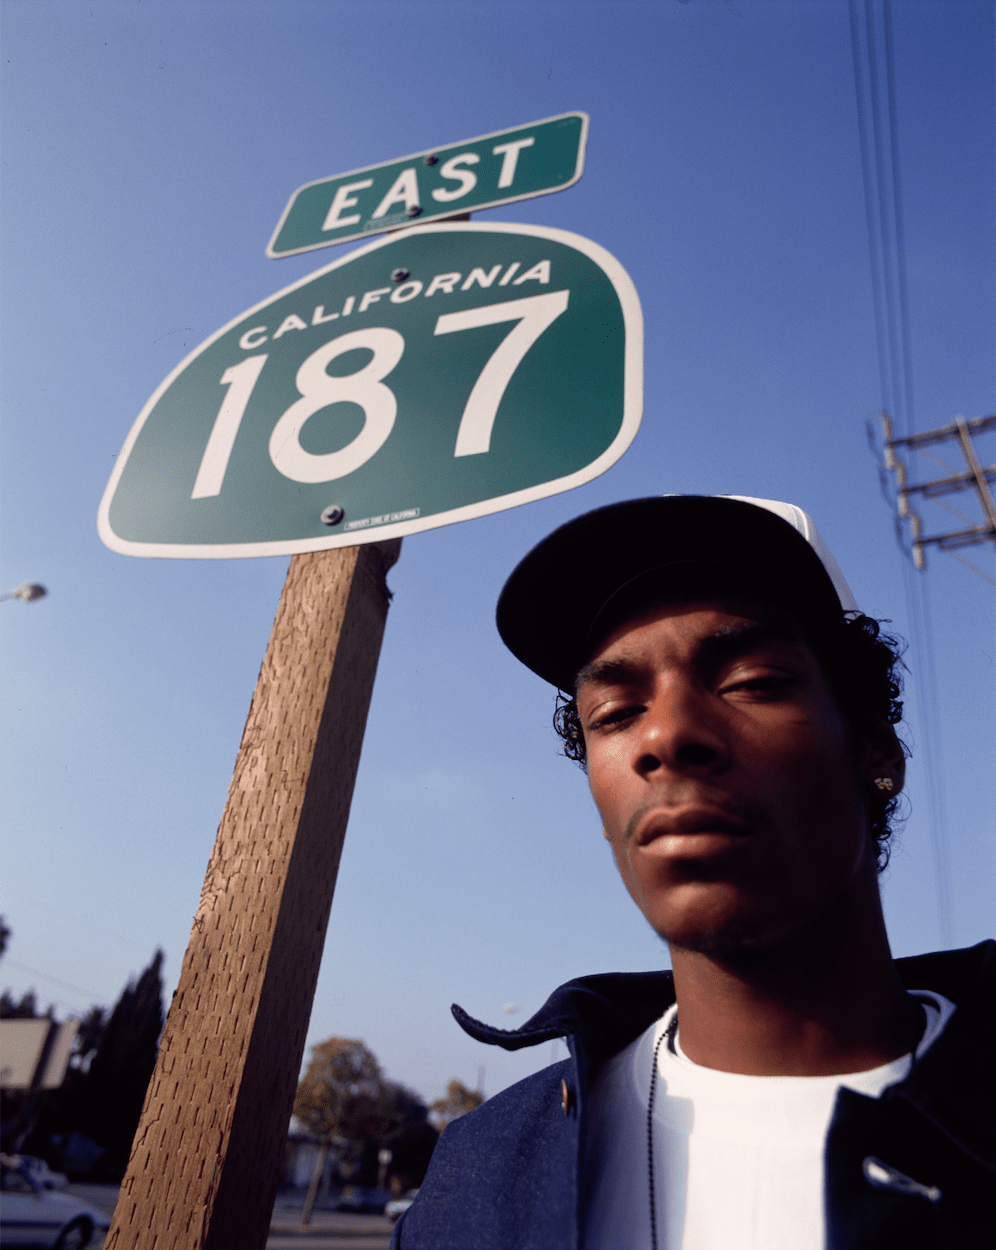 Snoop Dogg's Day: From Long Beach Crip, to Rapper, to a Star